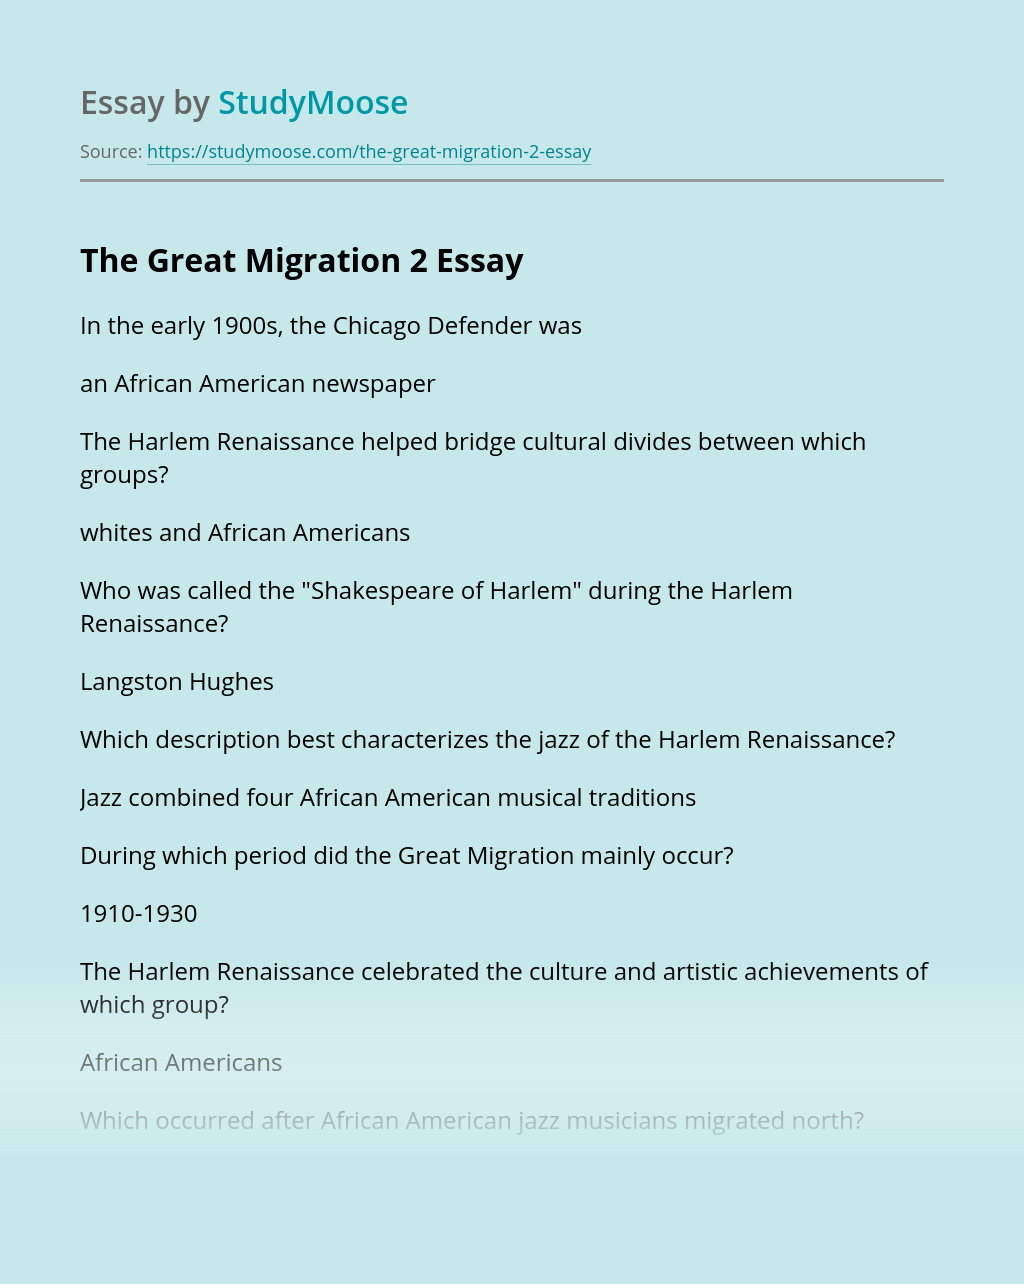 The Great Migration 2